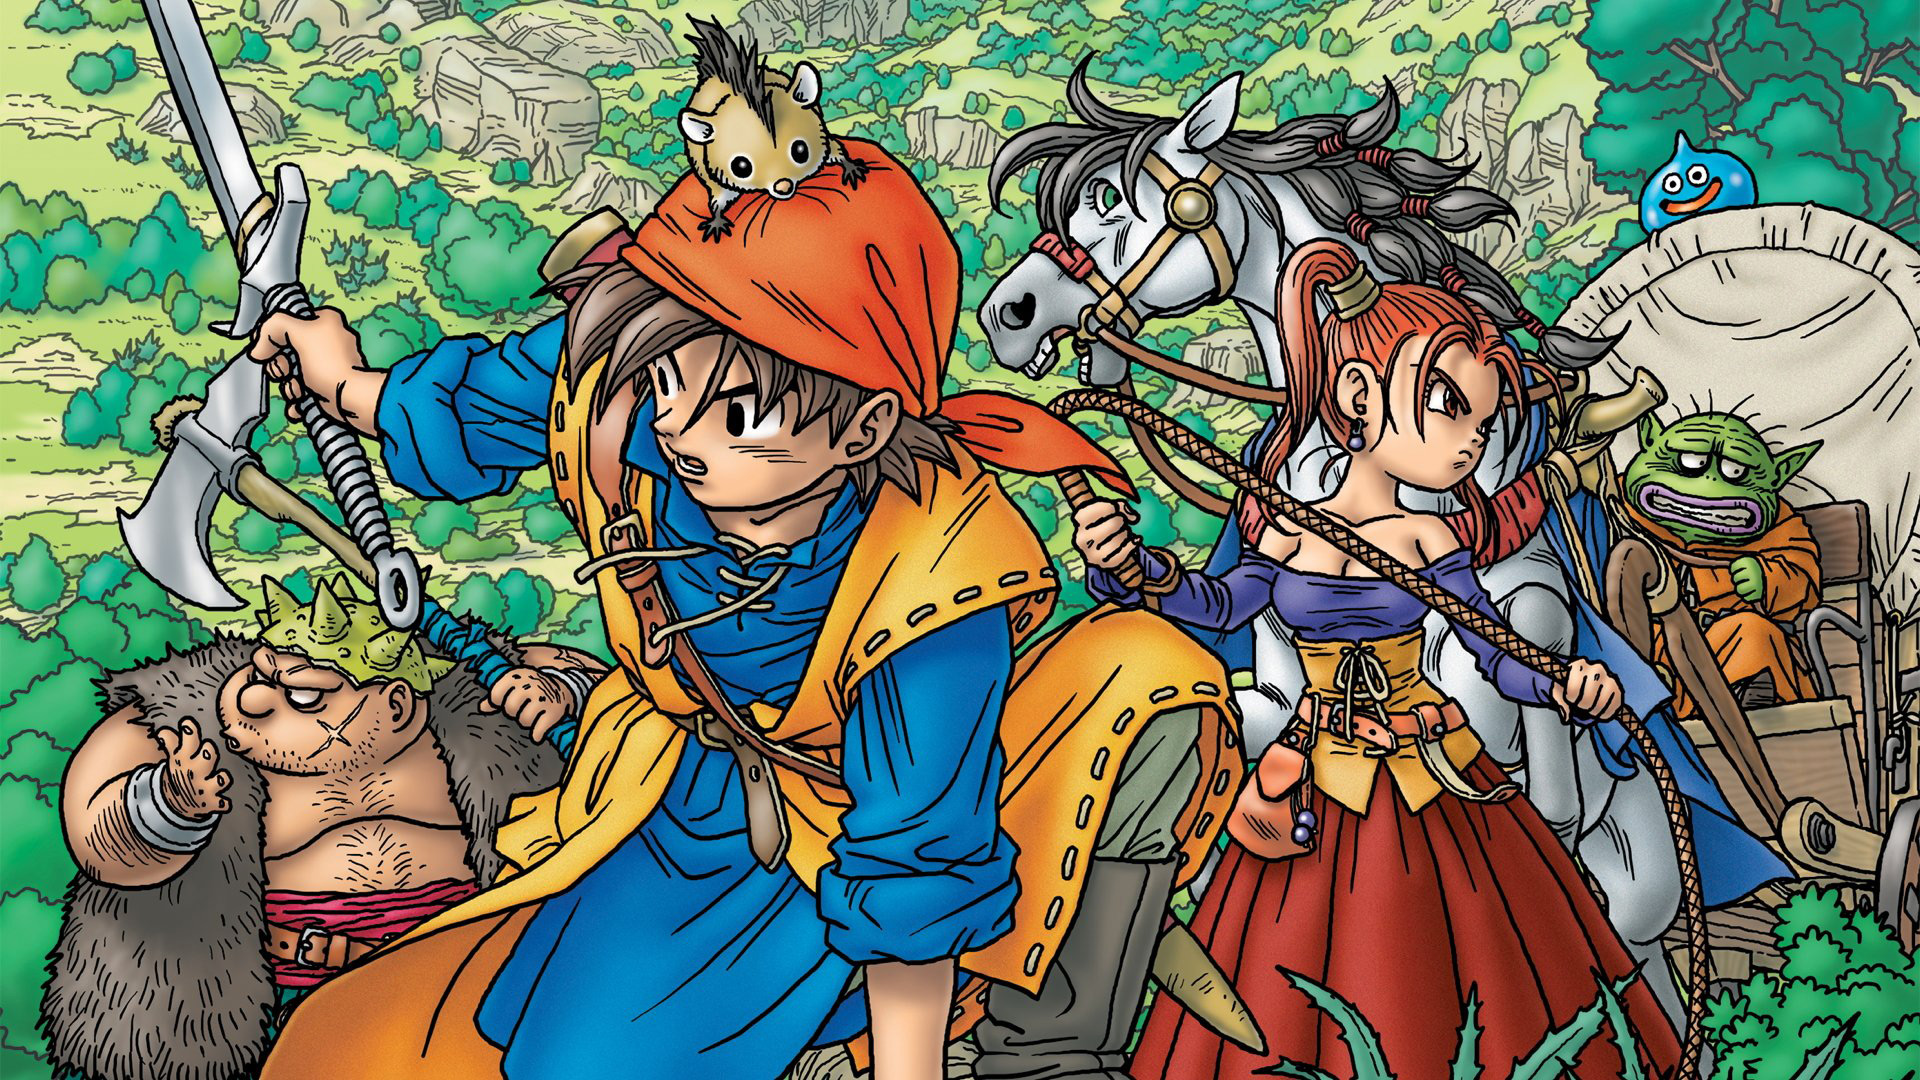 The greatest theme song in all of gaming is clearly the Dragon Quest theme screenshot